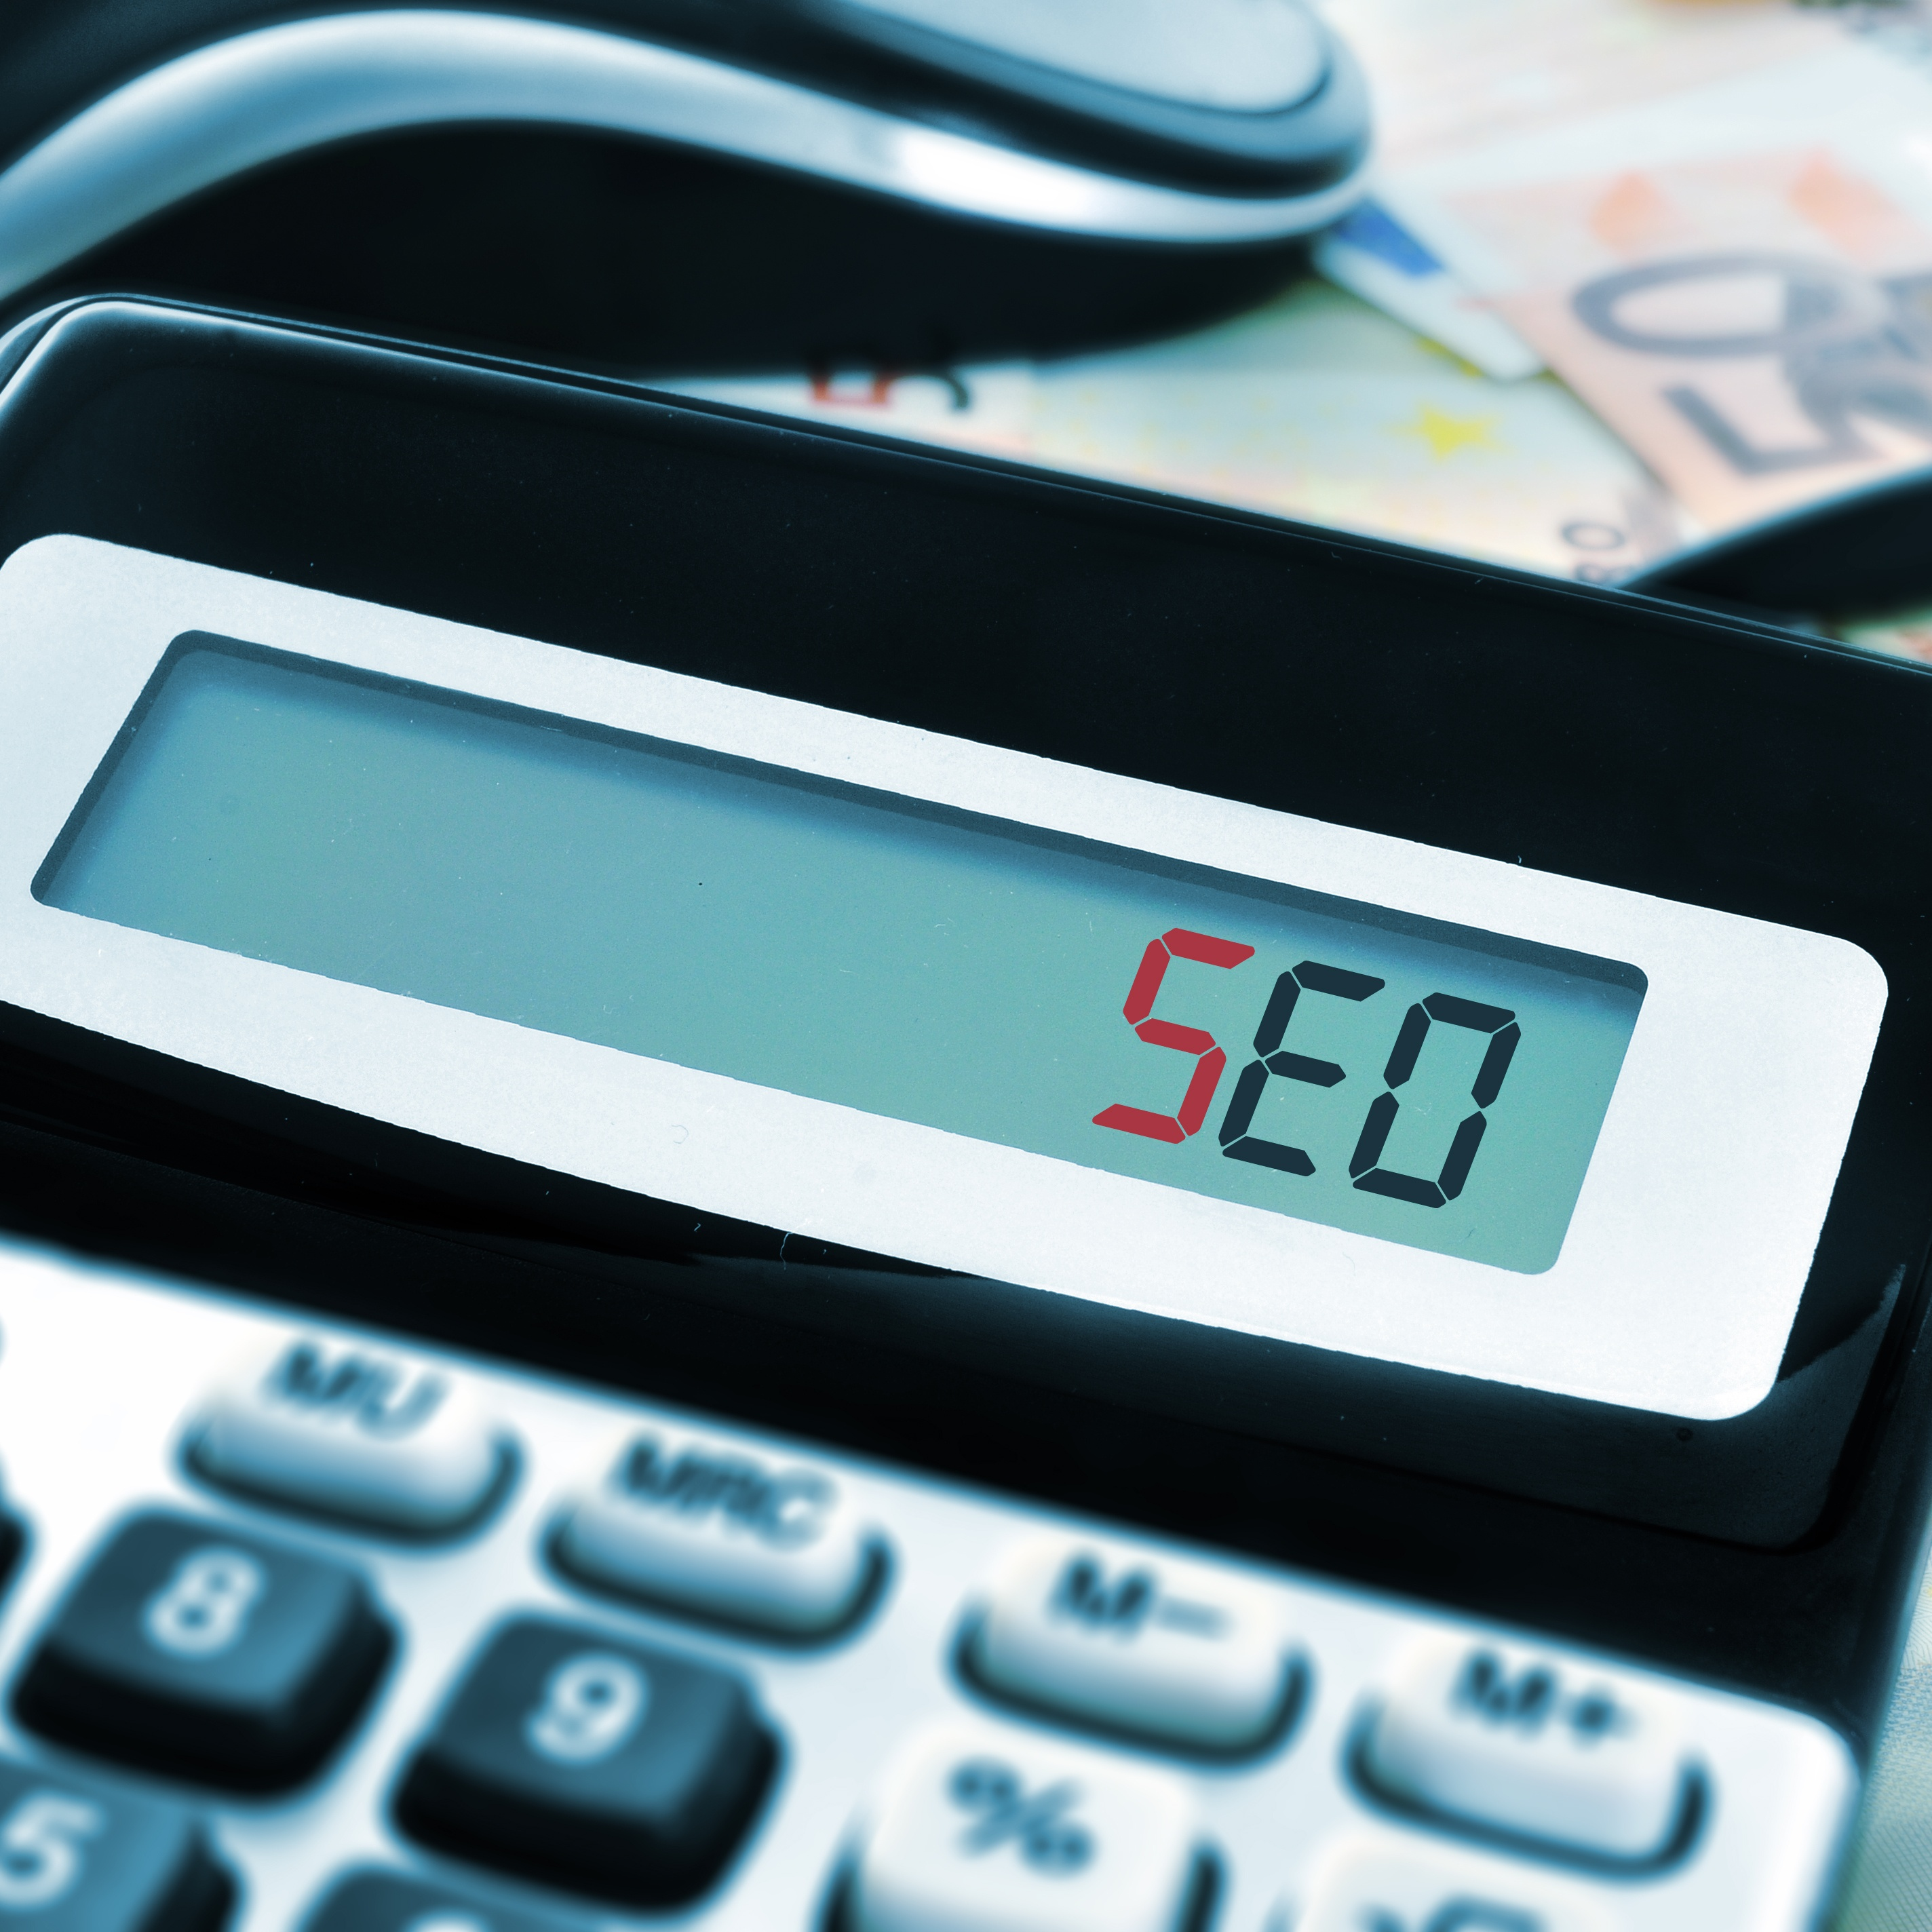 Introducing a new SEO - Search Engine Ownership